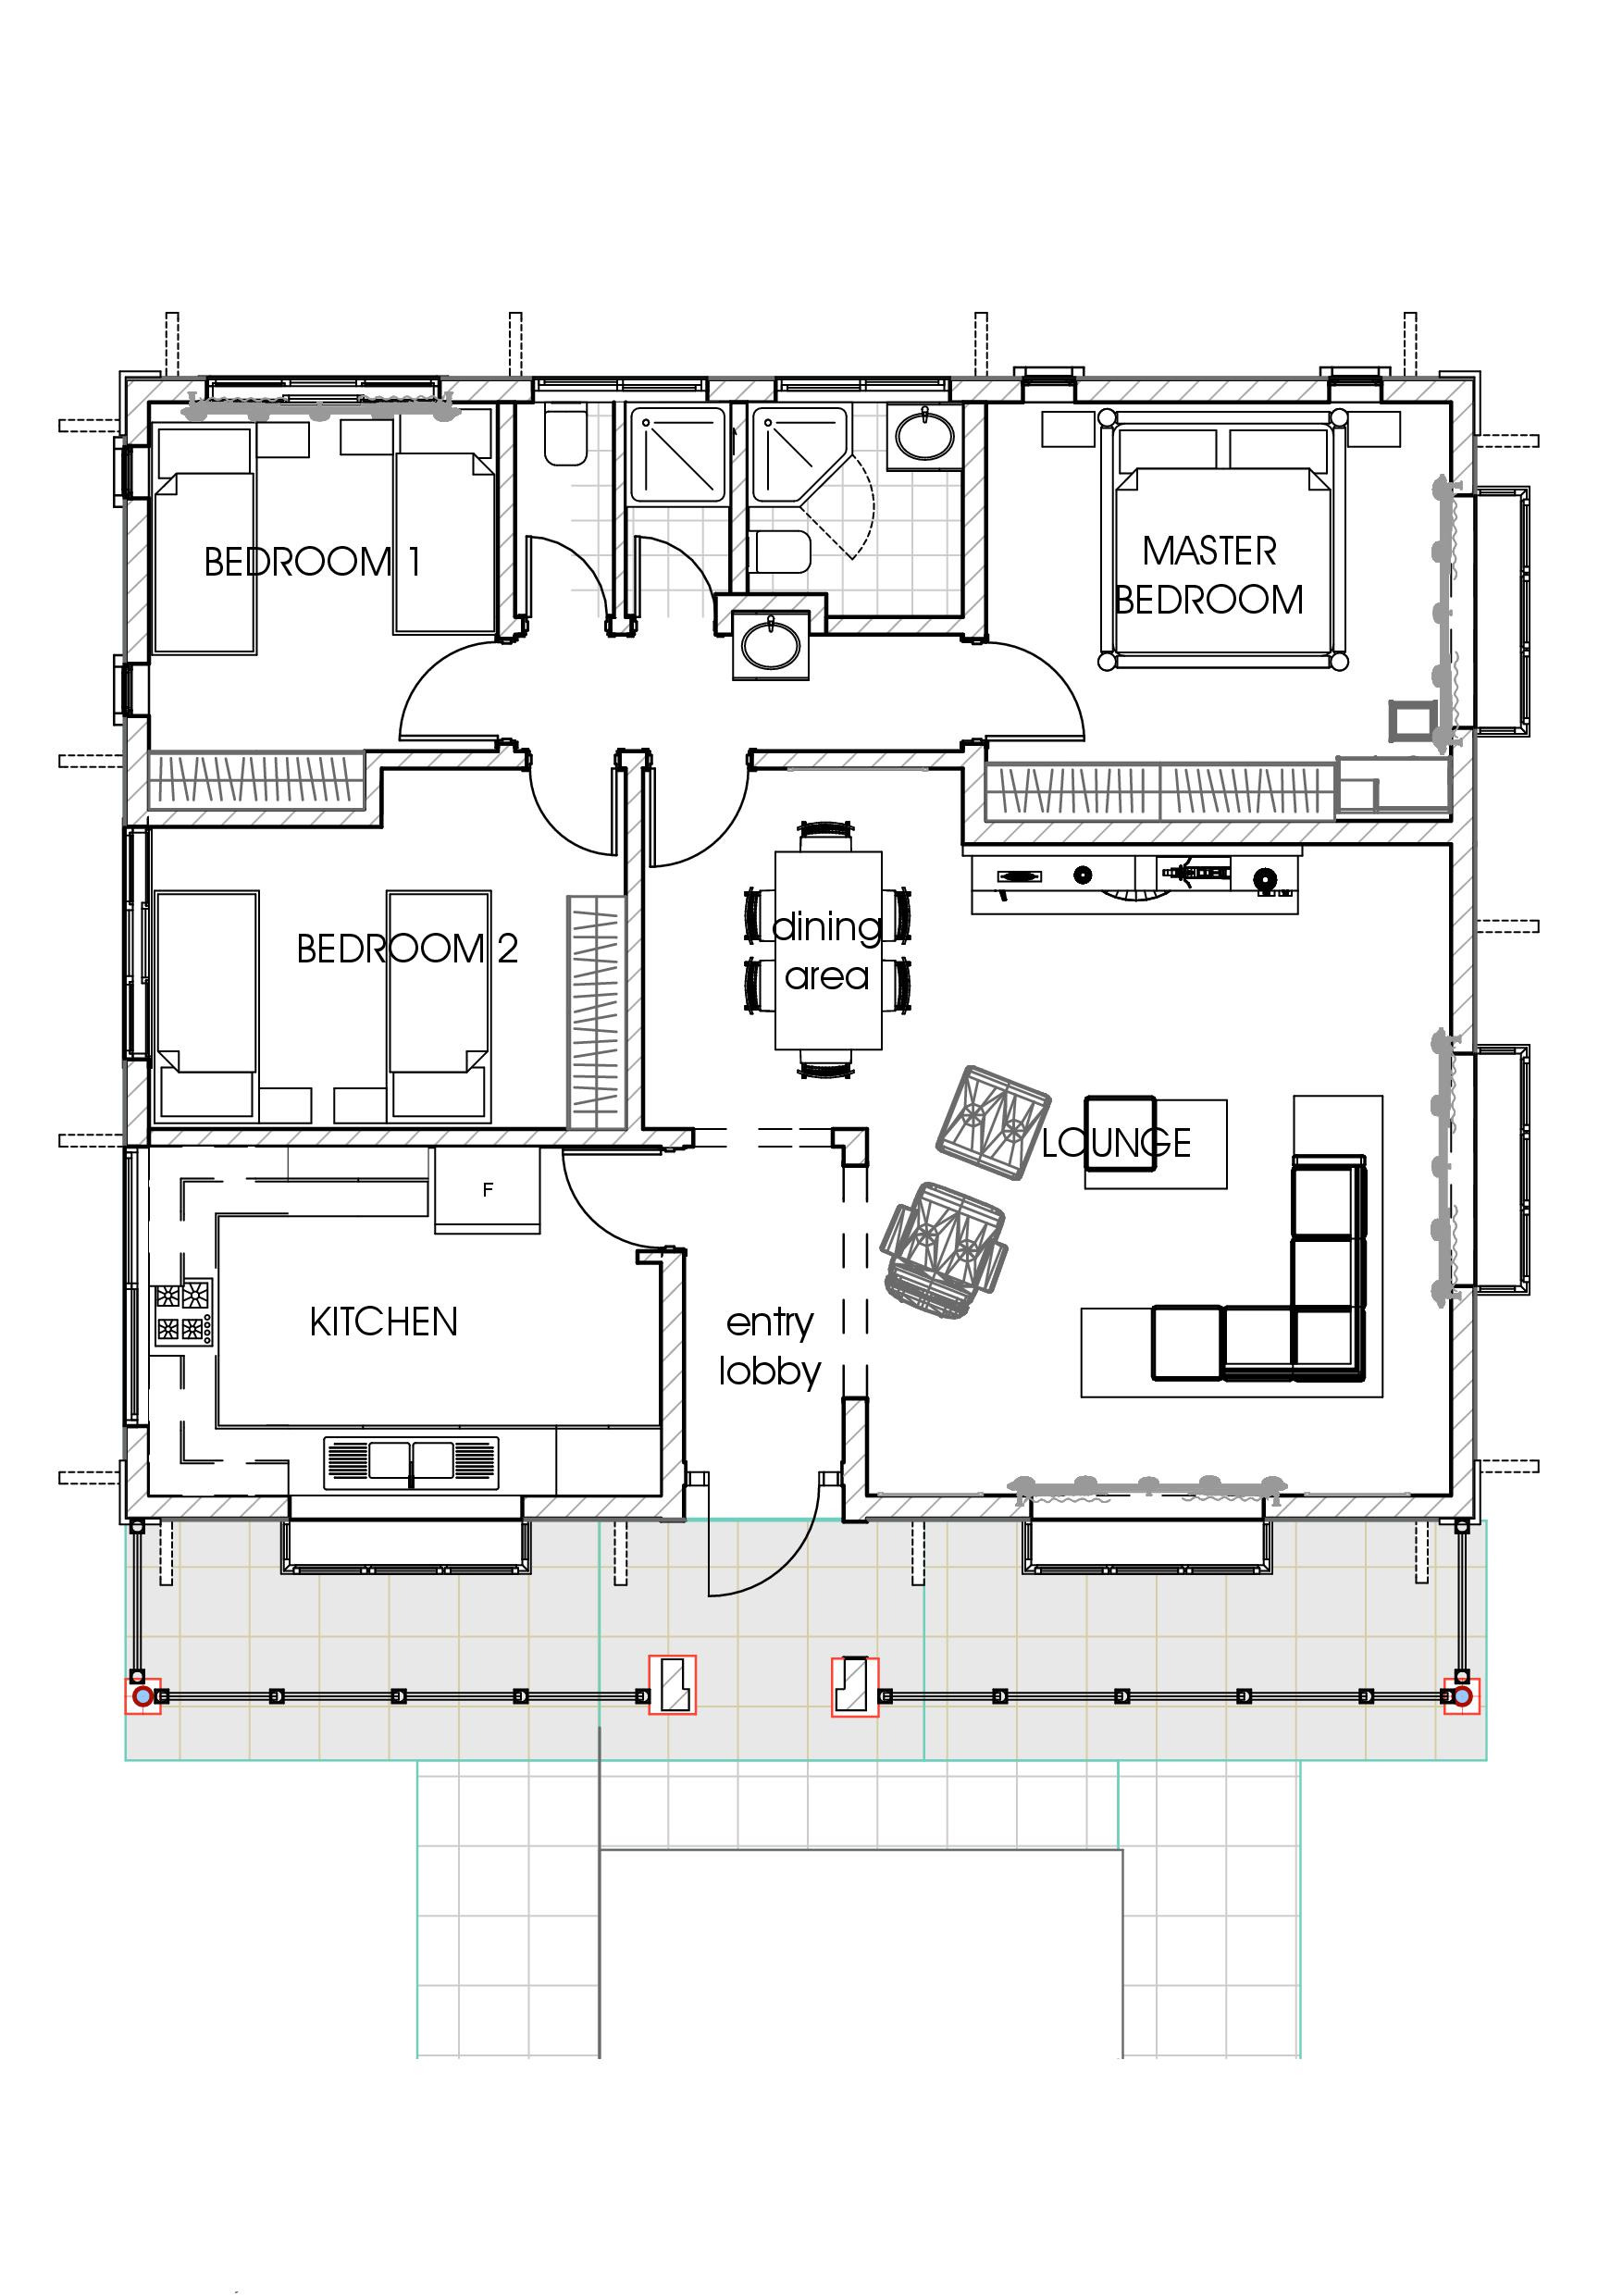 House Plans and Estimated Cost to Build Awesome David Chola – Architect – House Plans In Kenya – the Concise